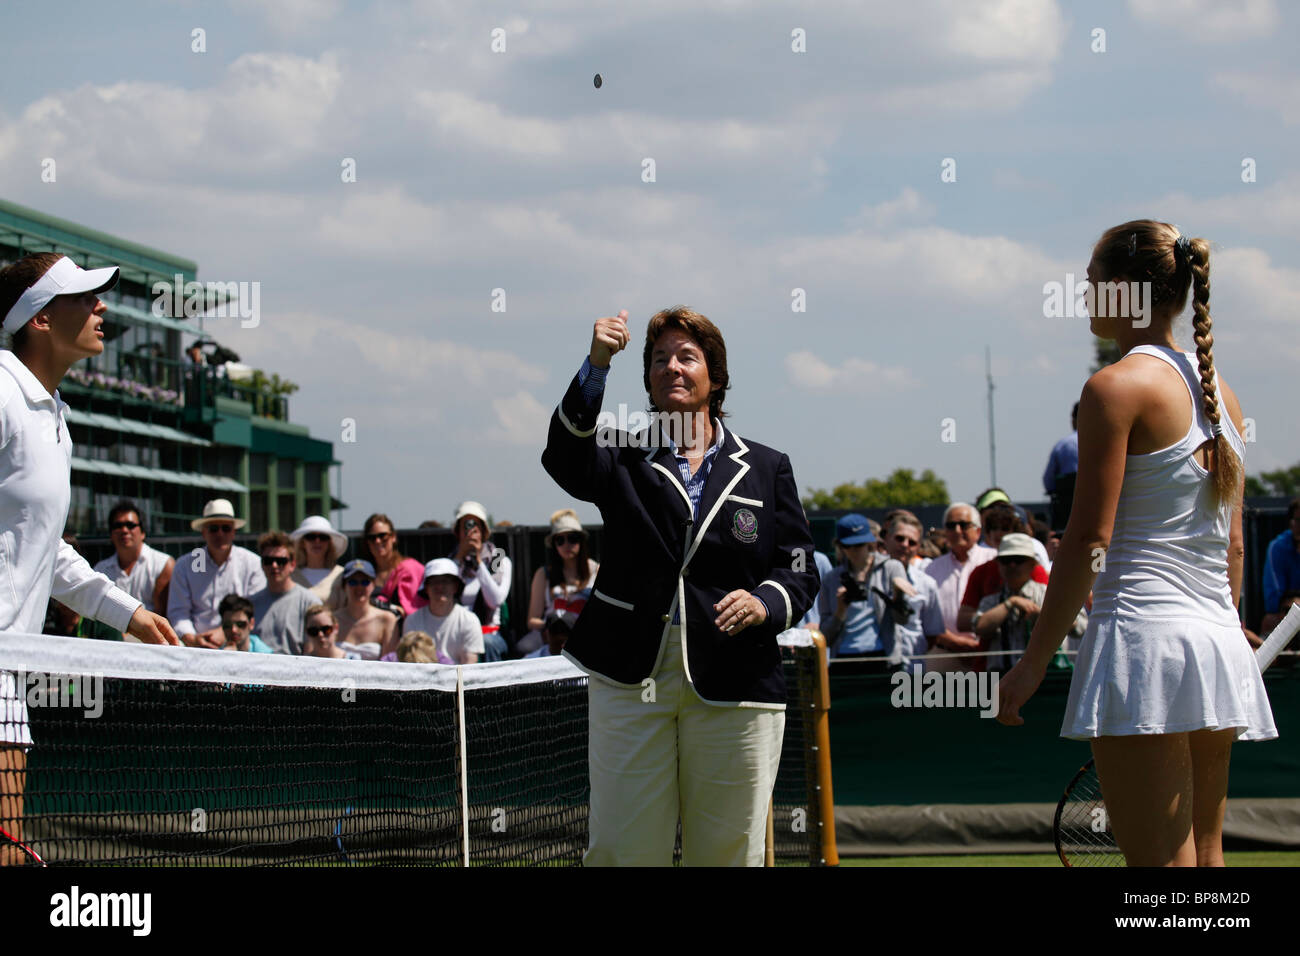 WTA Chair umpire Lynn Welch tosses the coin at the Wimbledon 2010, Championships - Stock Image